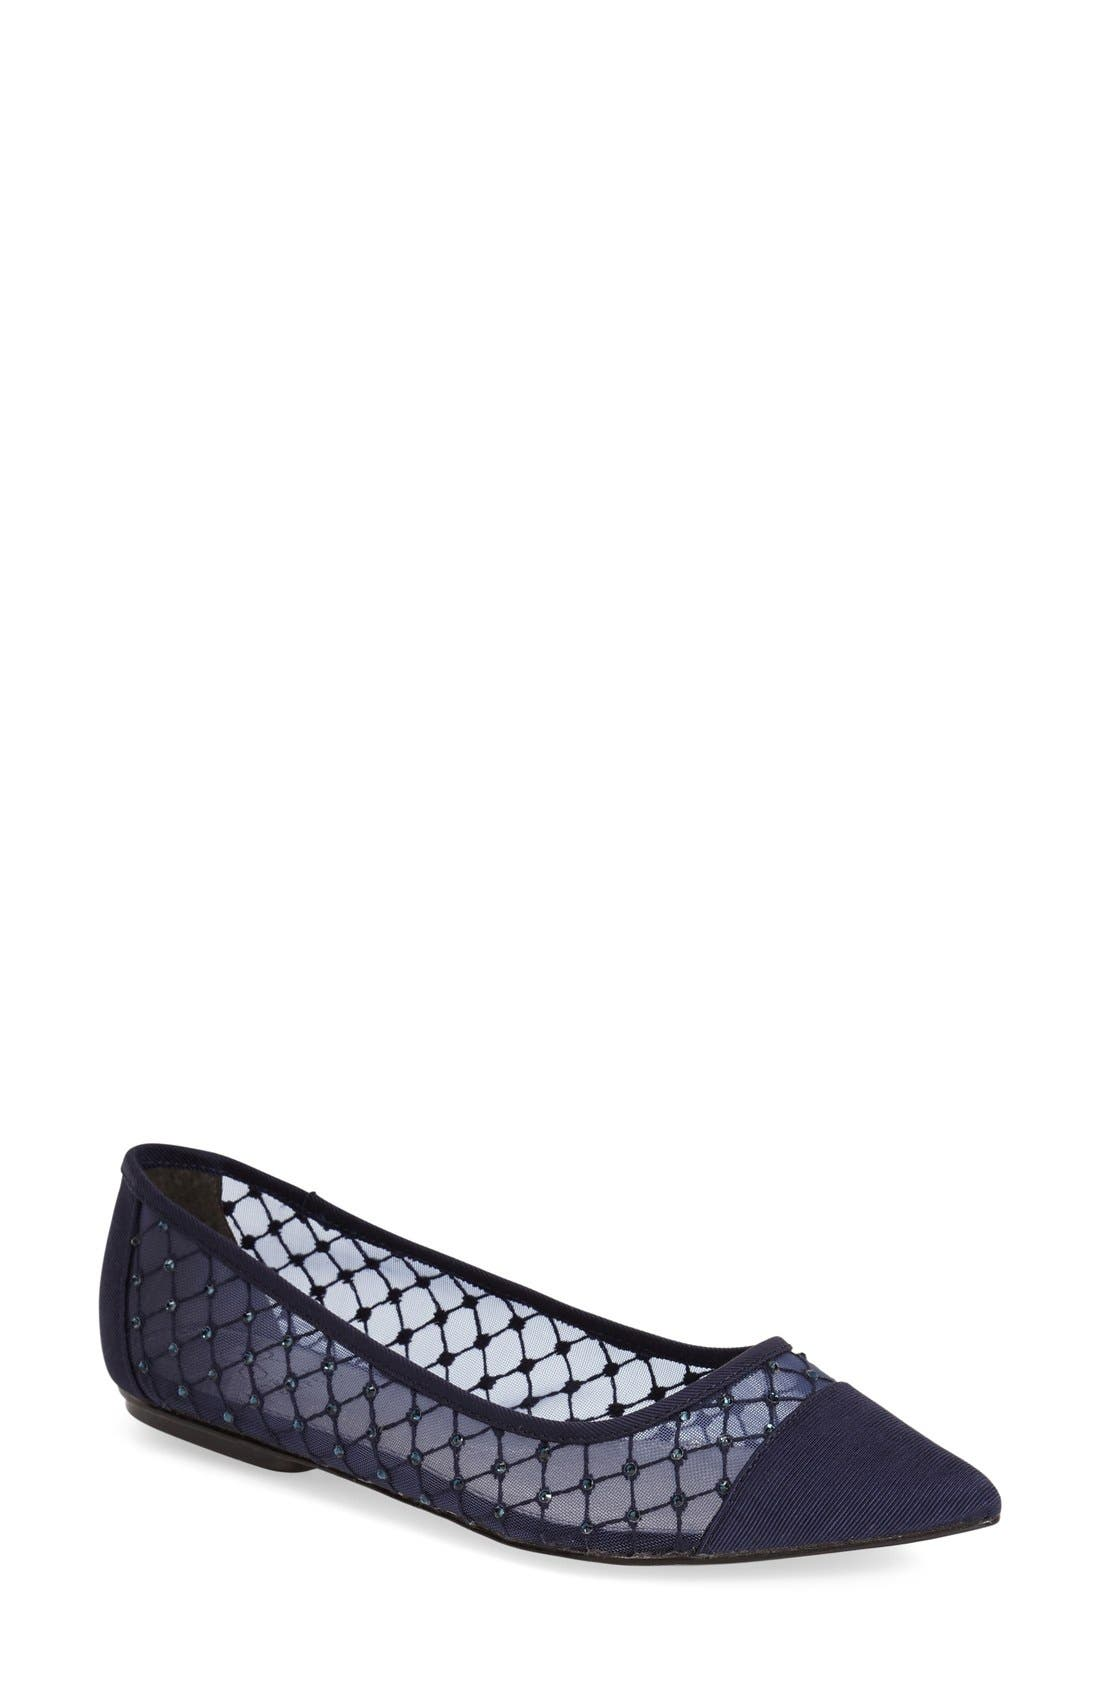 Alternate Image 1 Selected - Adrianna Papell Jeweled Mesh Ballet Flat (Women)